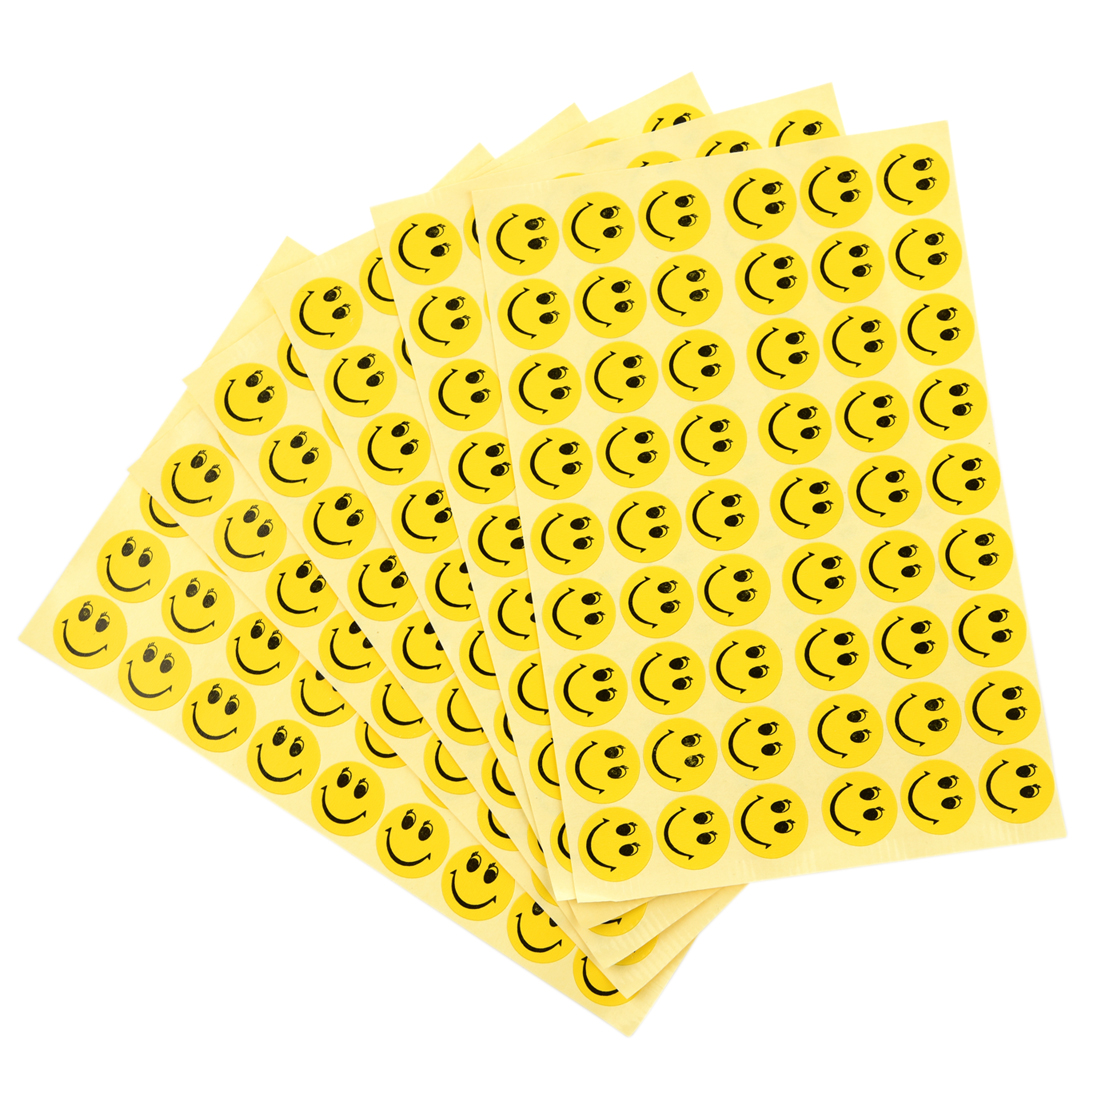 6 Cute Smiley Smile Face Children Reward Merit Praise Stickers for School party new cute head portrait sticker smiling face interesting smile face stickers children kids toy for phone notebook message twitter